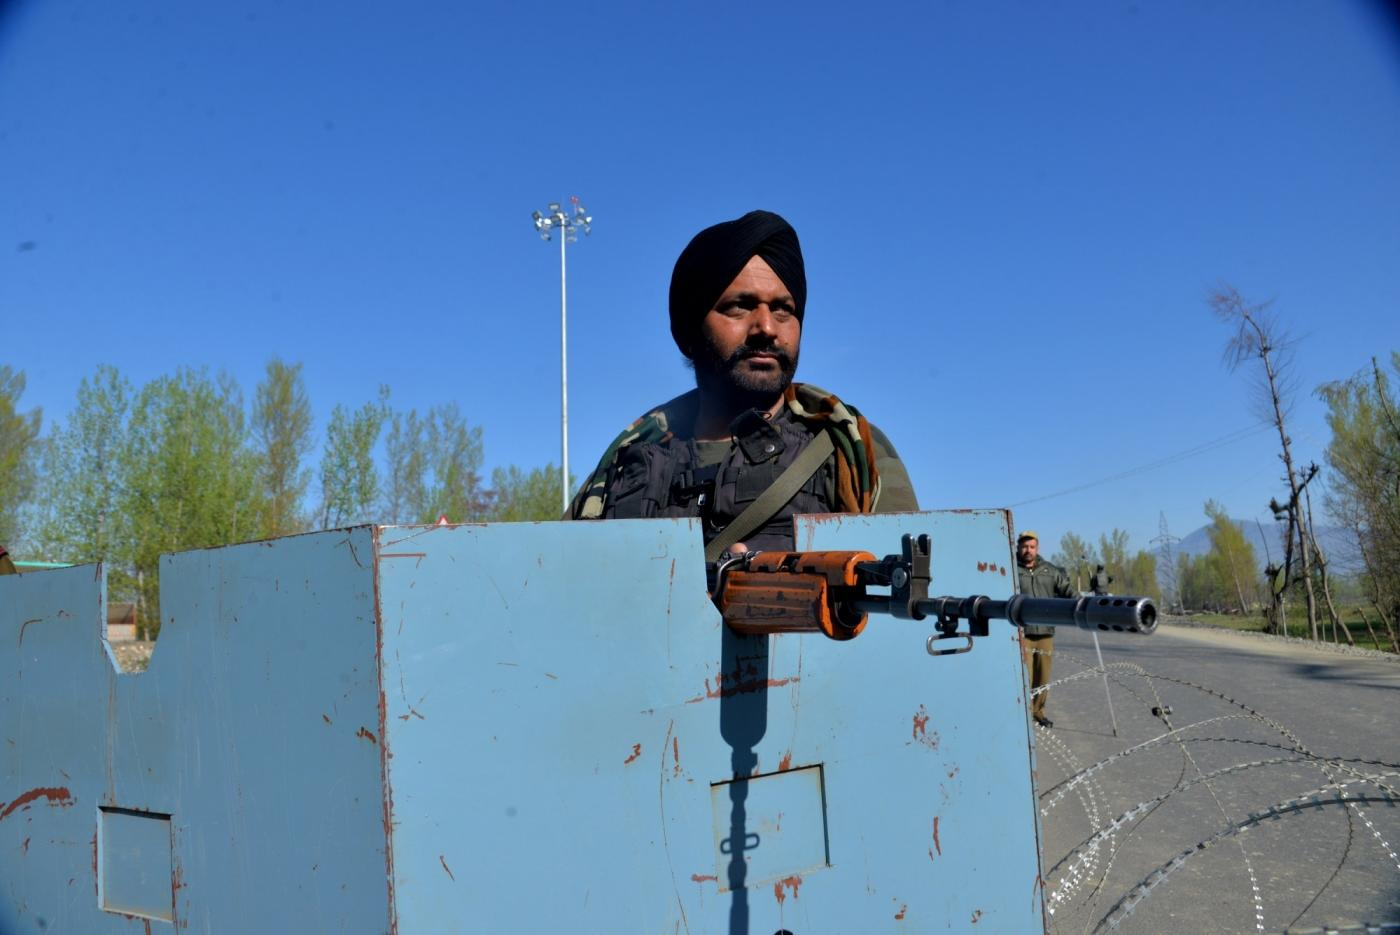 Pulwama: Security personnel during a gunfight with militants in Jammu and Kashmir's Pulwama district on April 7, 2019. (Photo: IANS) by .